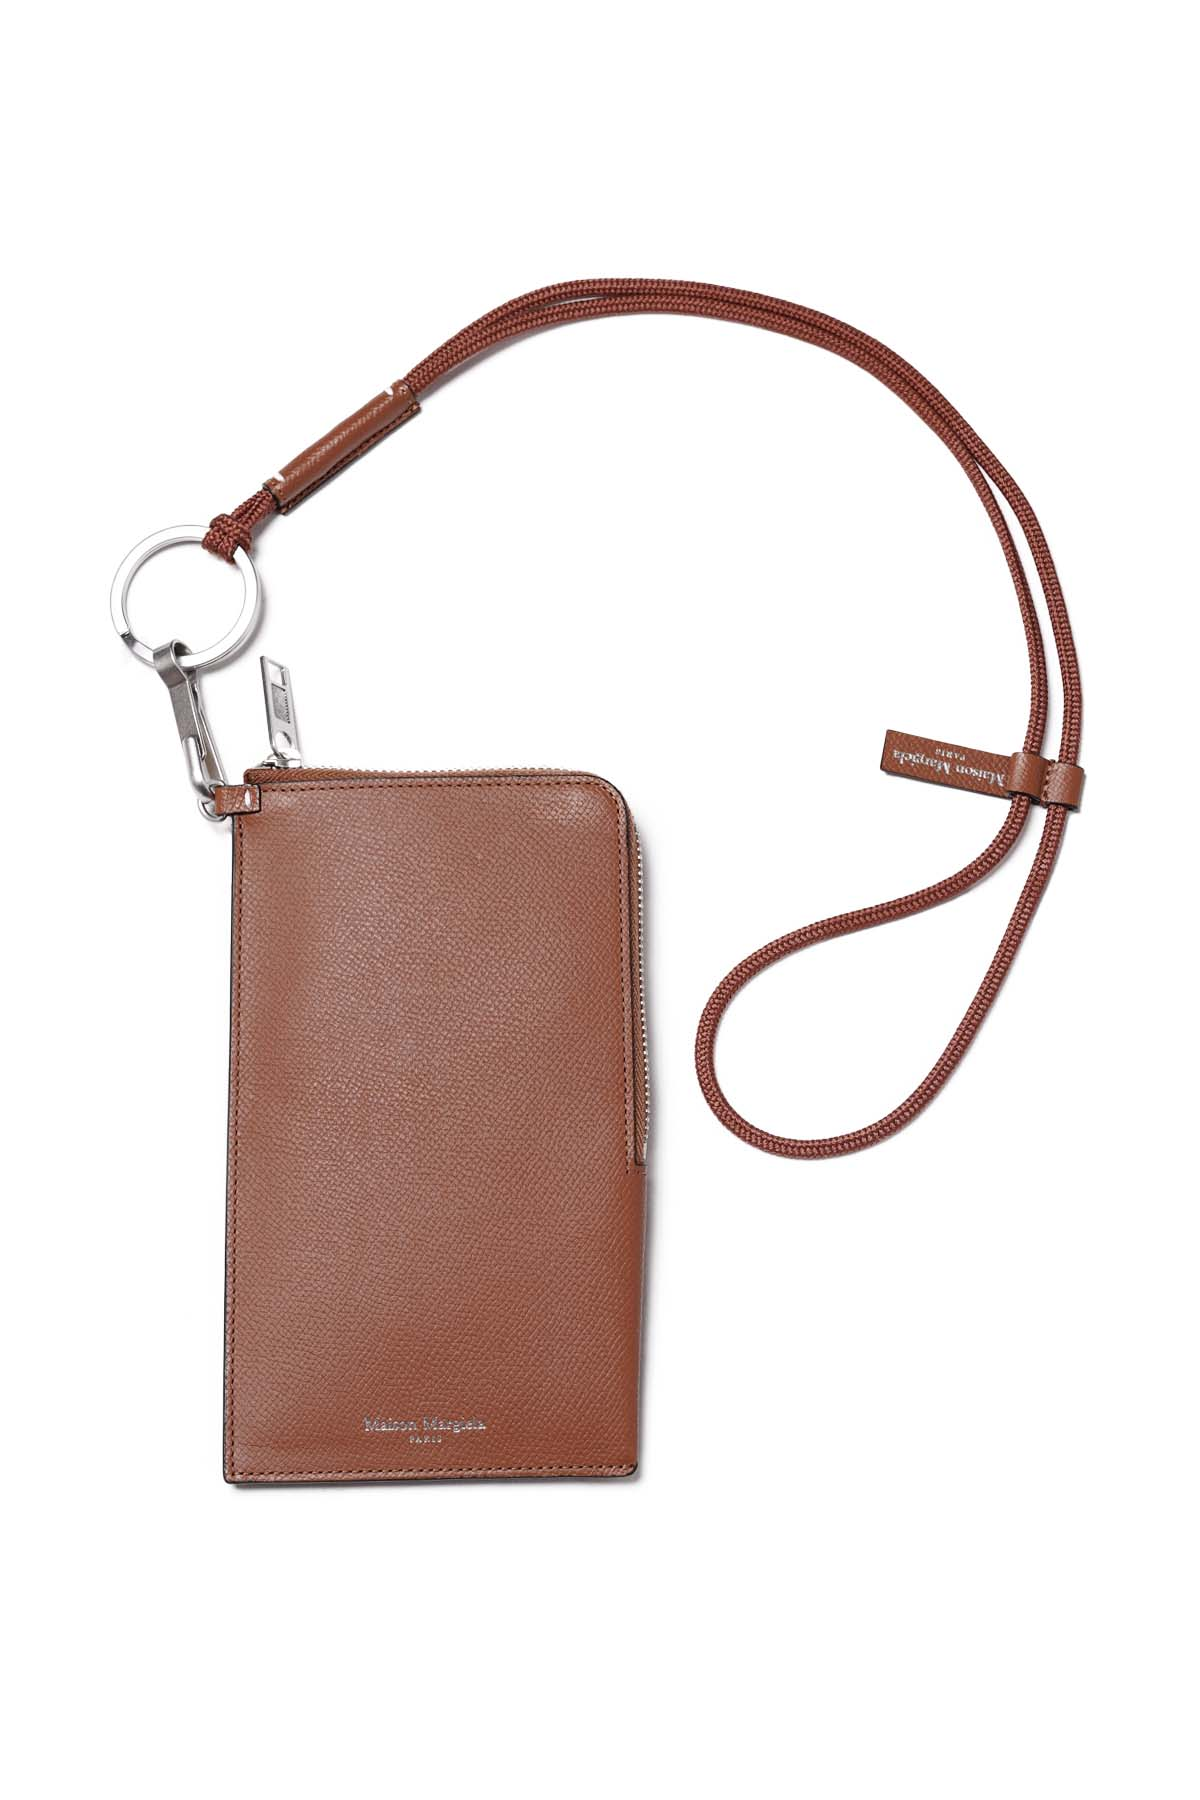 iPhone Case Brown[2021SS]